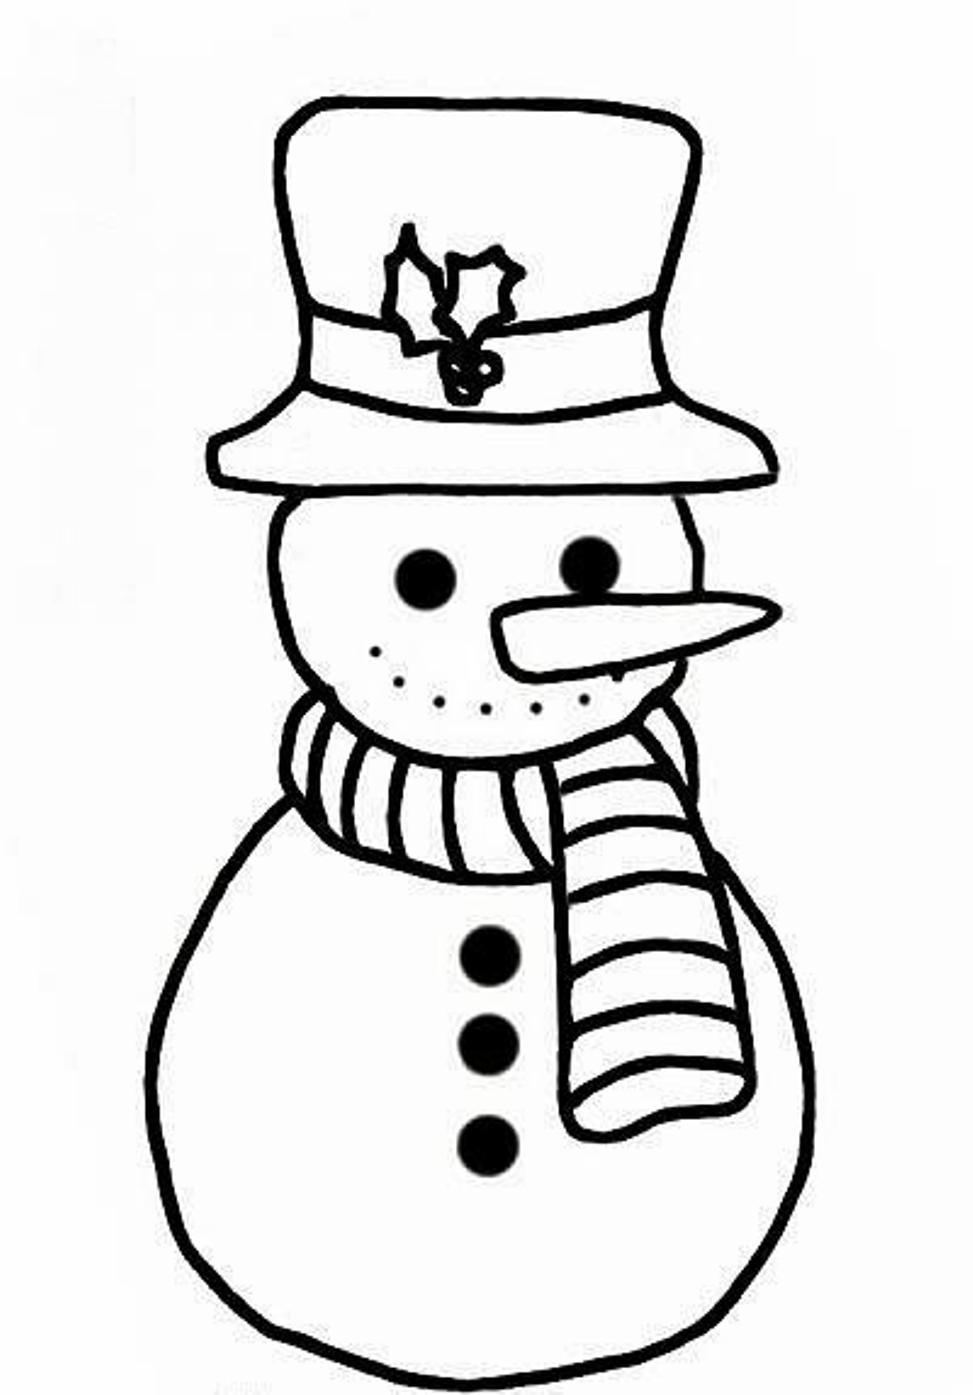 snowman coloring page 30 free snowman coloring pages printable snowman page coloring